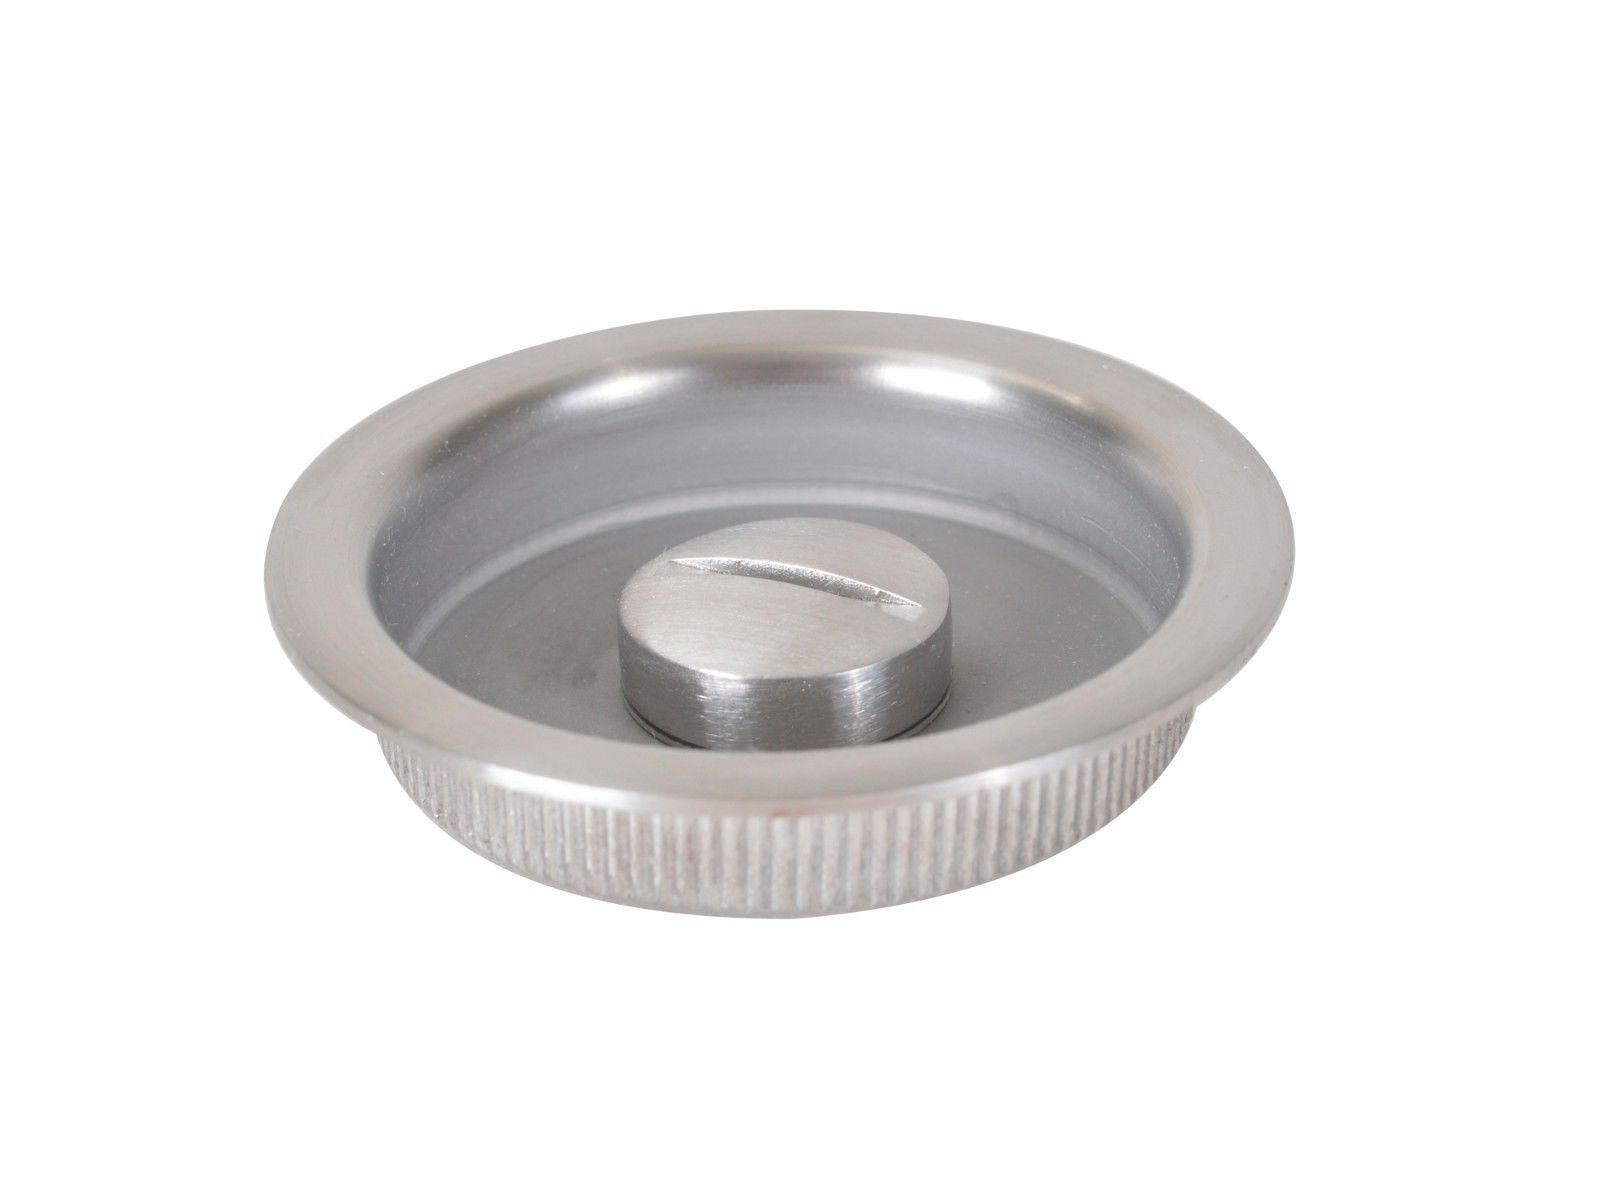 Stainless Steel Sliding Cup Handle